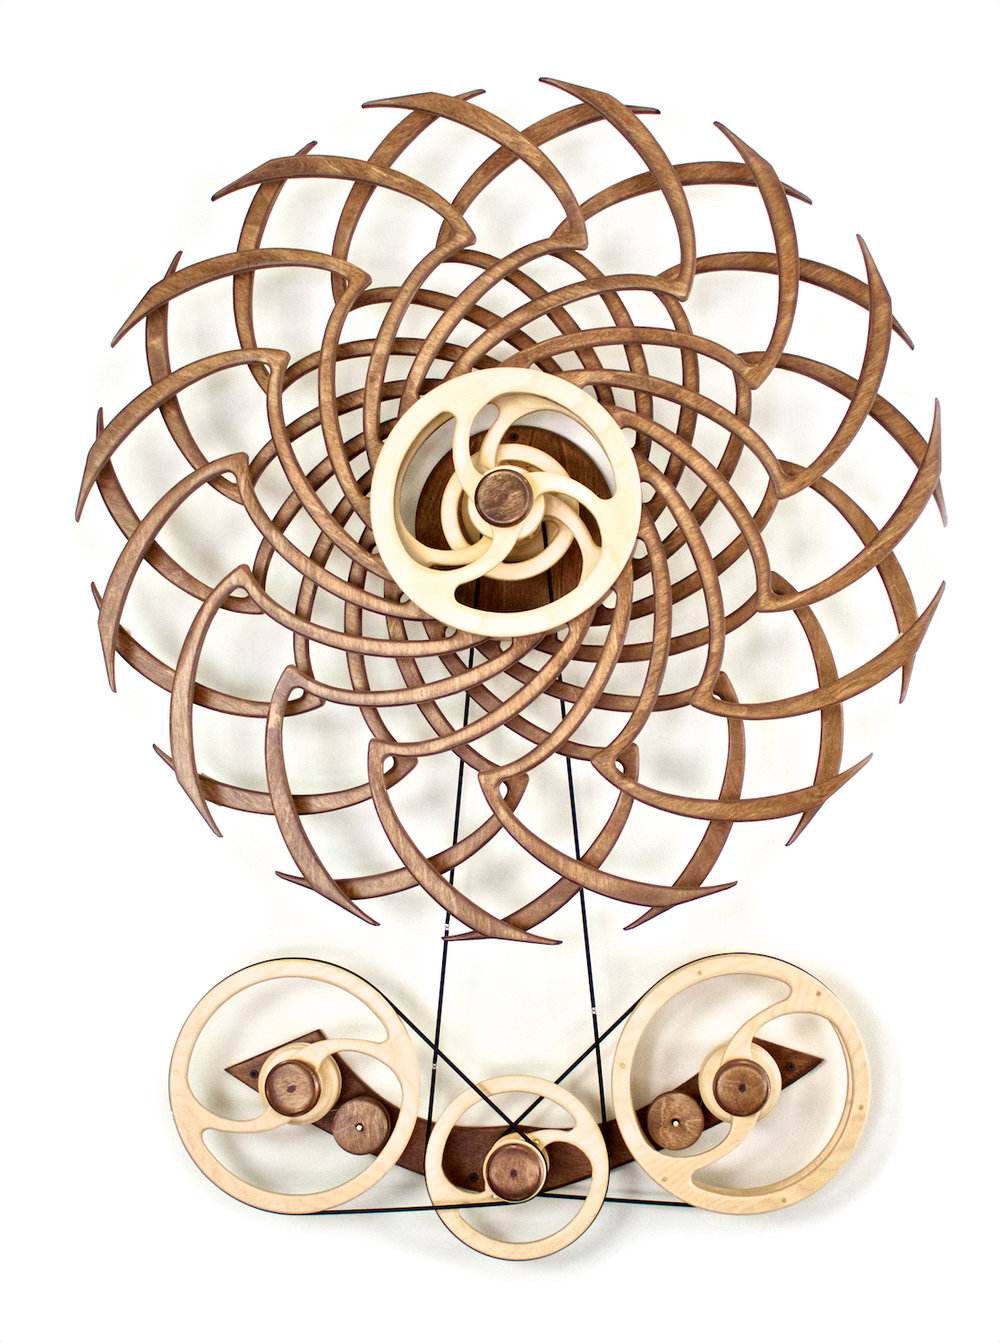 Deja Vu - Spring-driven kinetic wall sculpture by David C. Roy of Wood That Works.